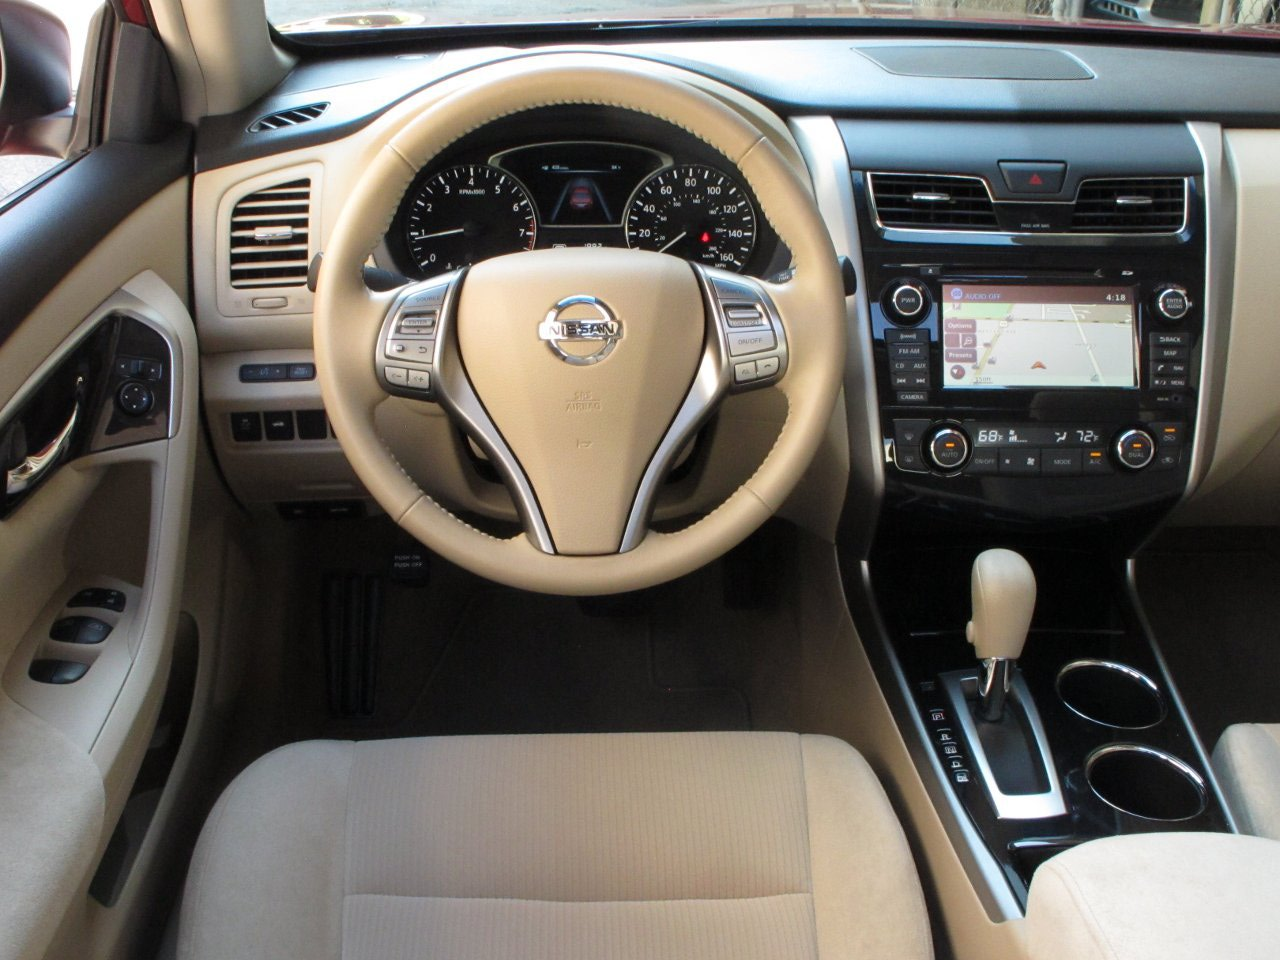 Nissan Altima 2013 Interior Base Model 2013 NISSAN ALTIMA - I...